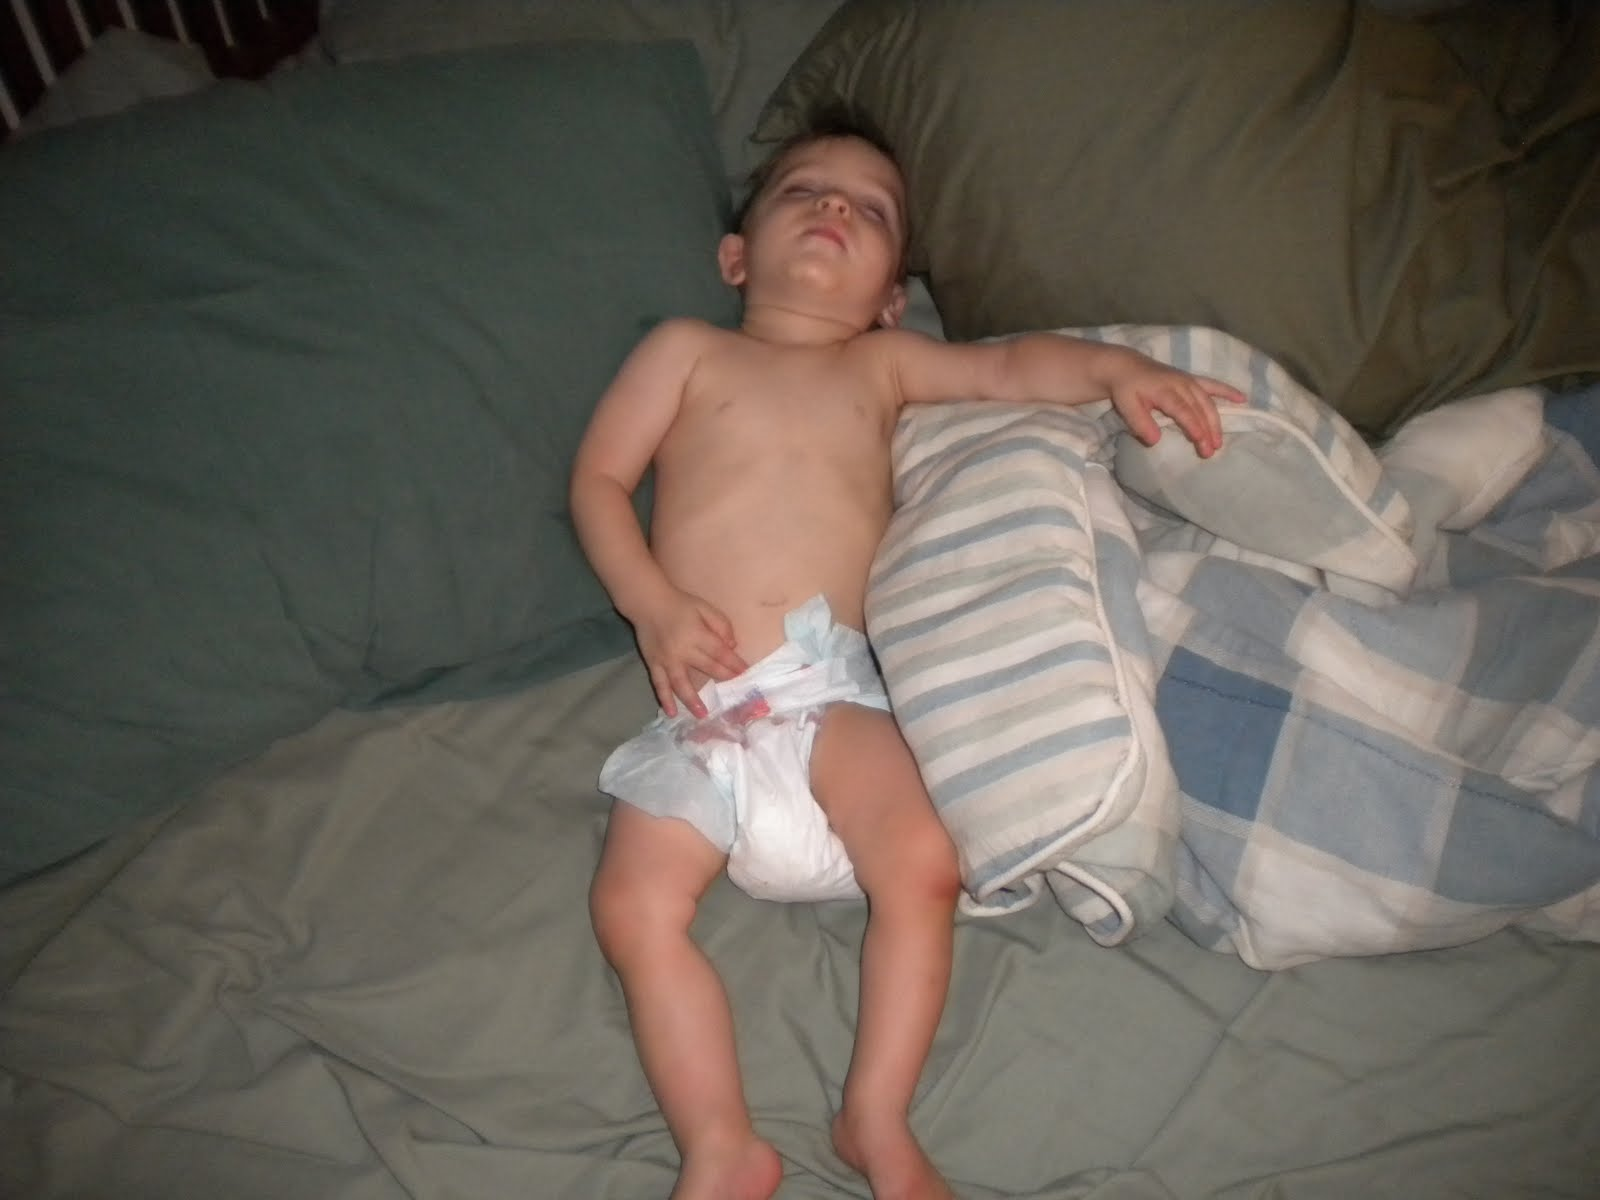 Diaper girl sky wetting her diaper while in bed 9